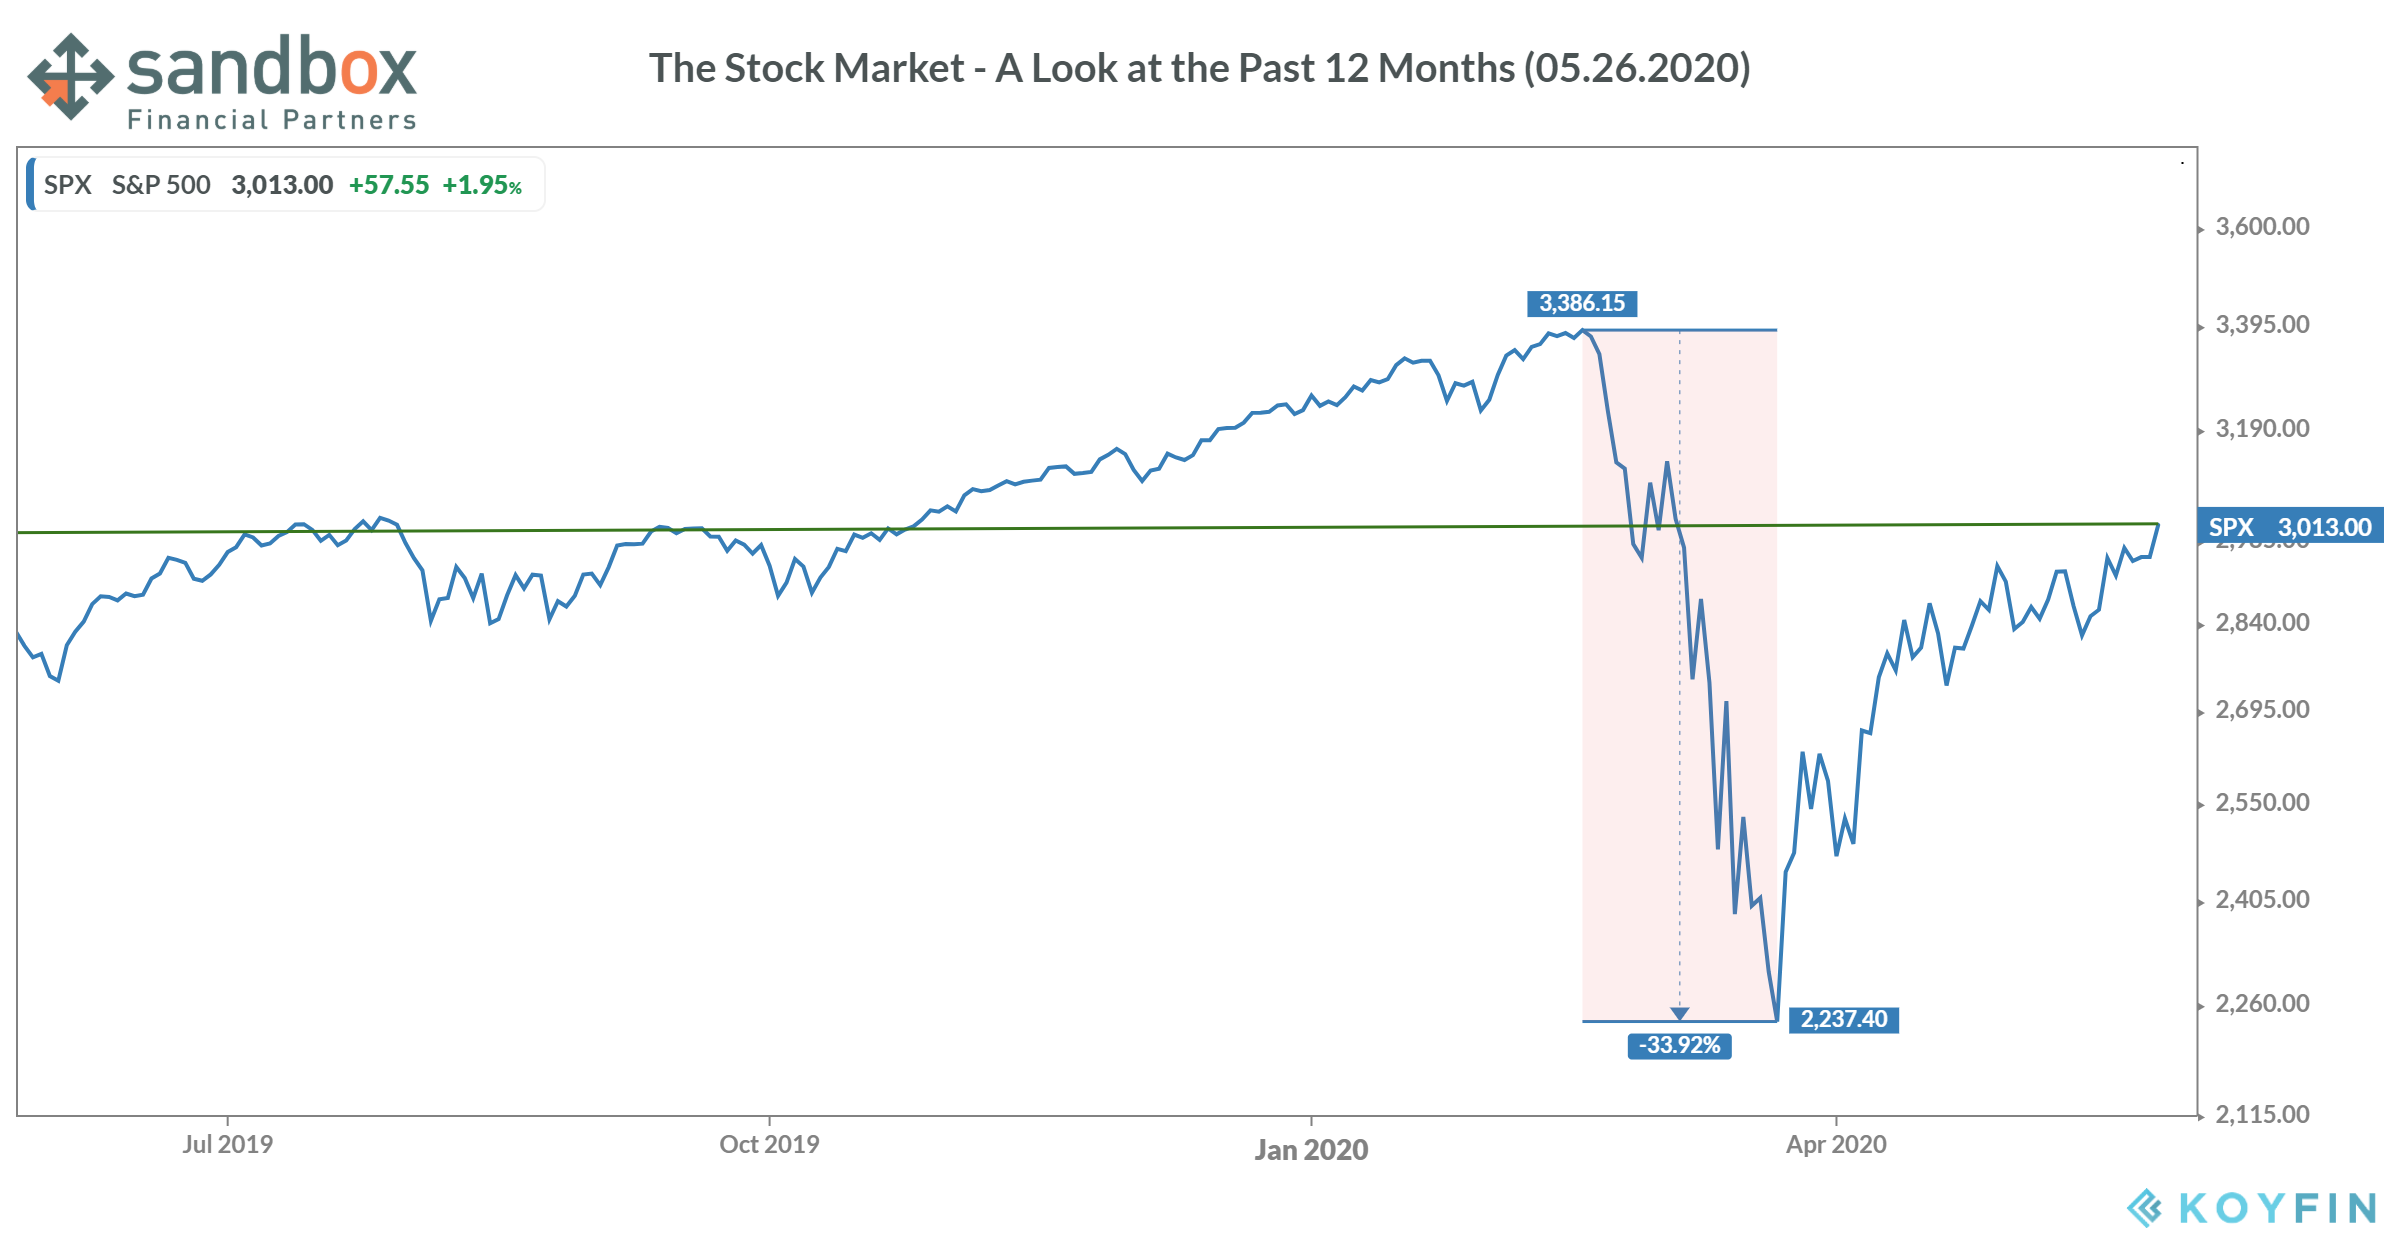 Chart-A look at the stock market over the past 12 months